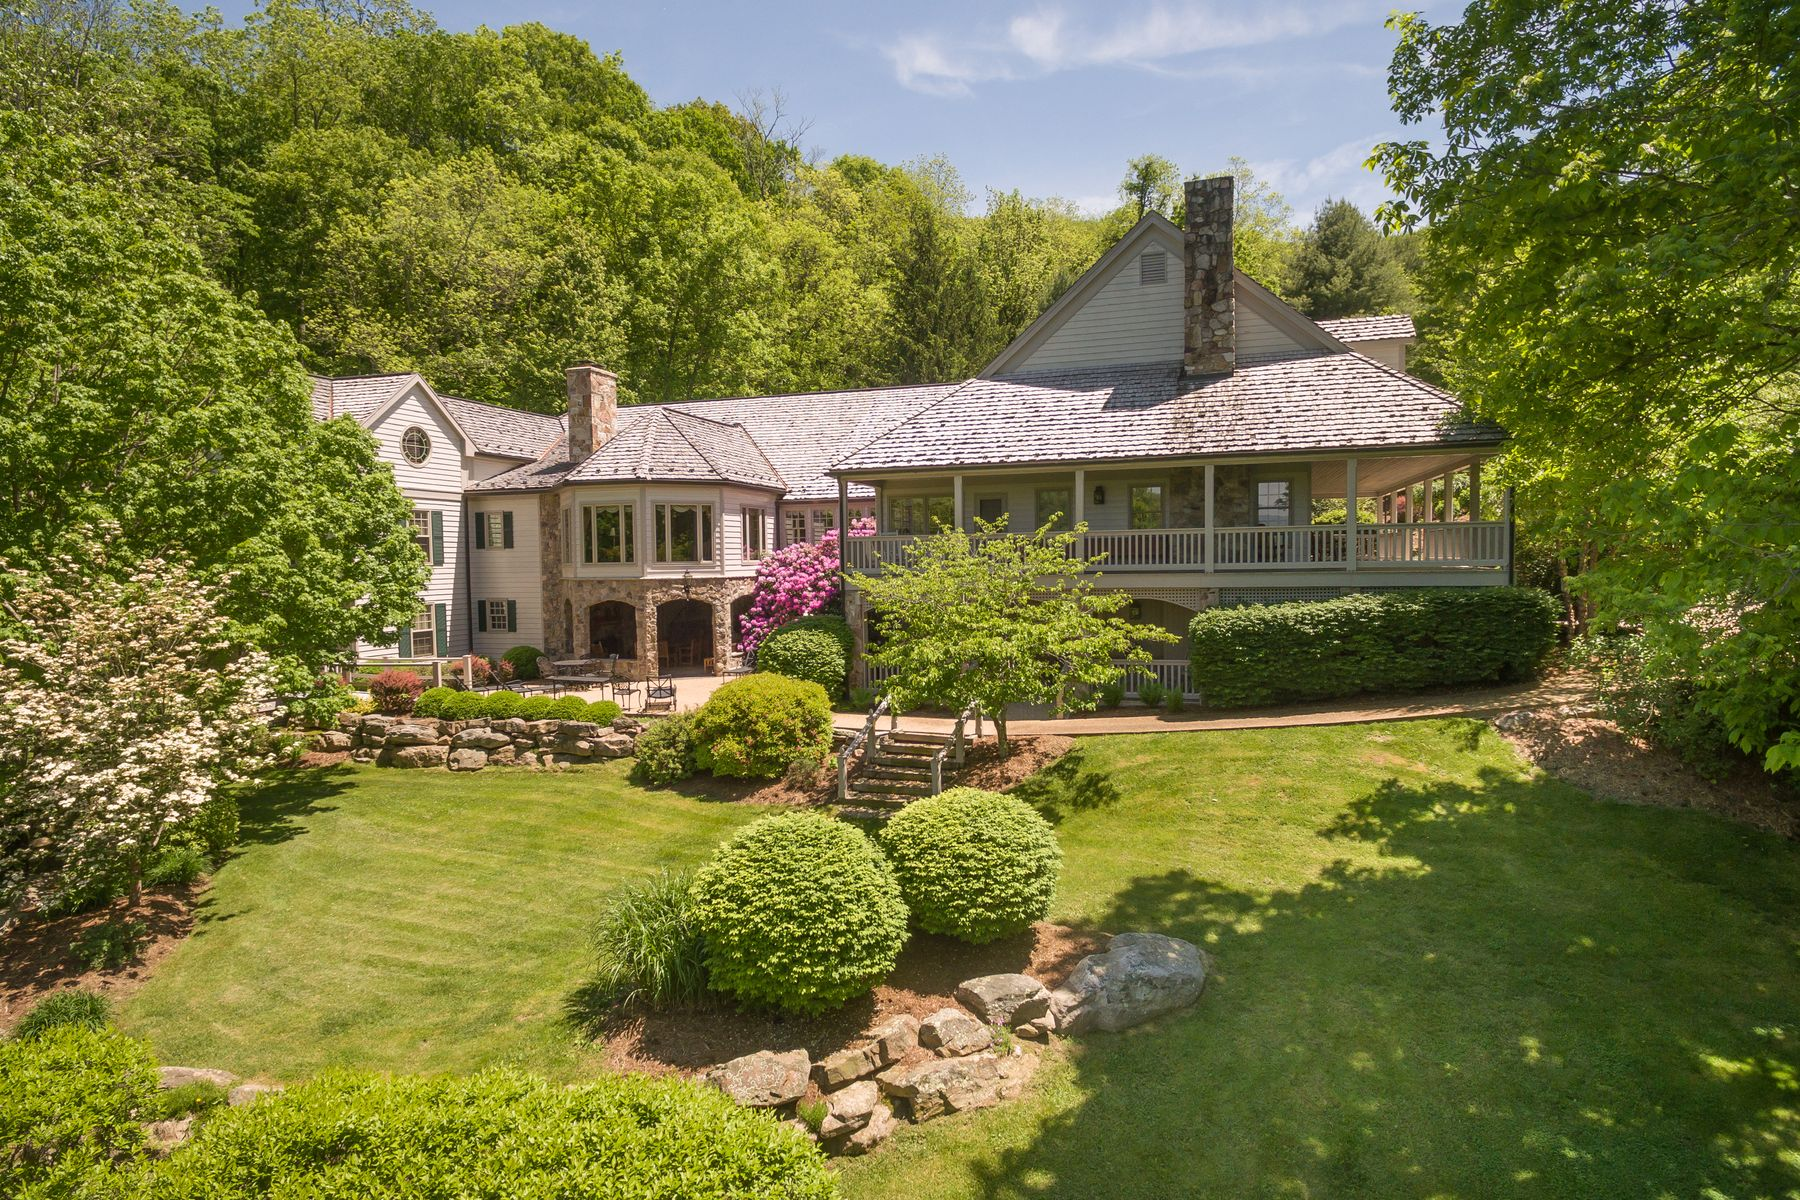 Single Family Home for Sale at Threave House 229 WOODSIDE LN Warm Springs, Virginia 24484 United States